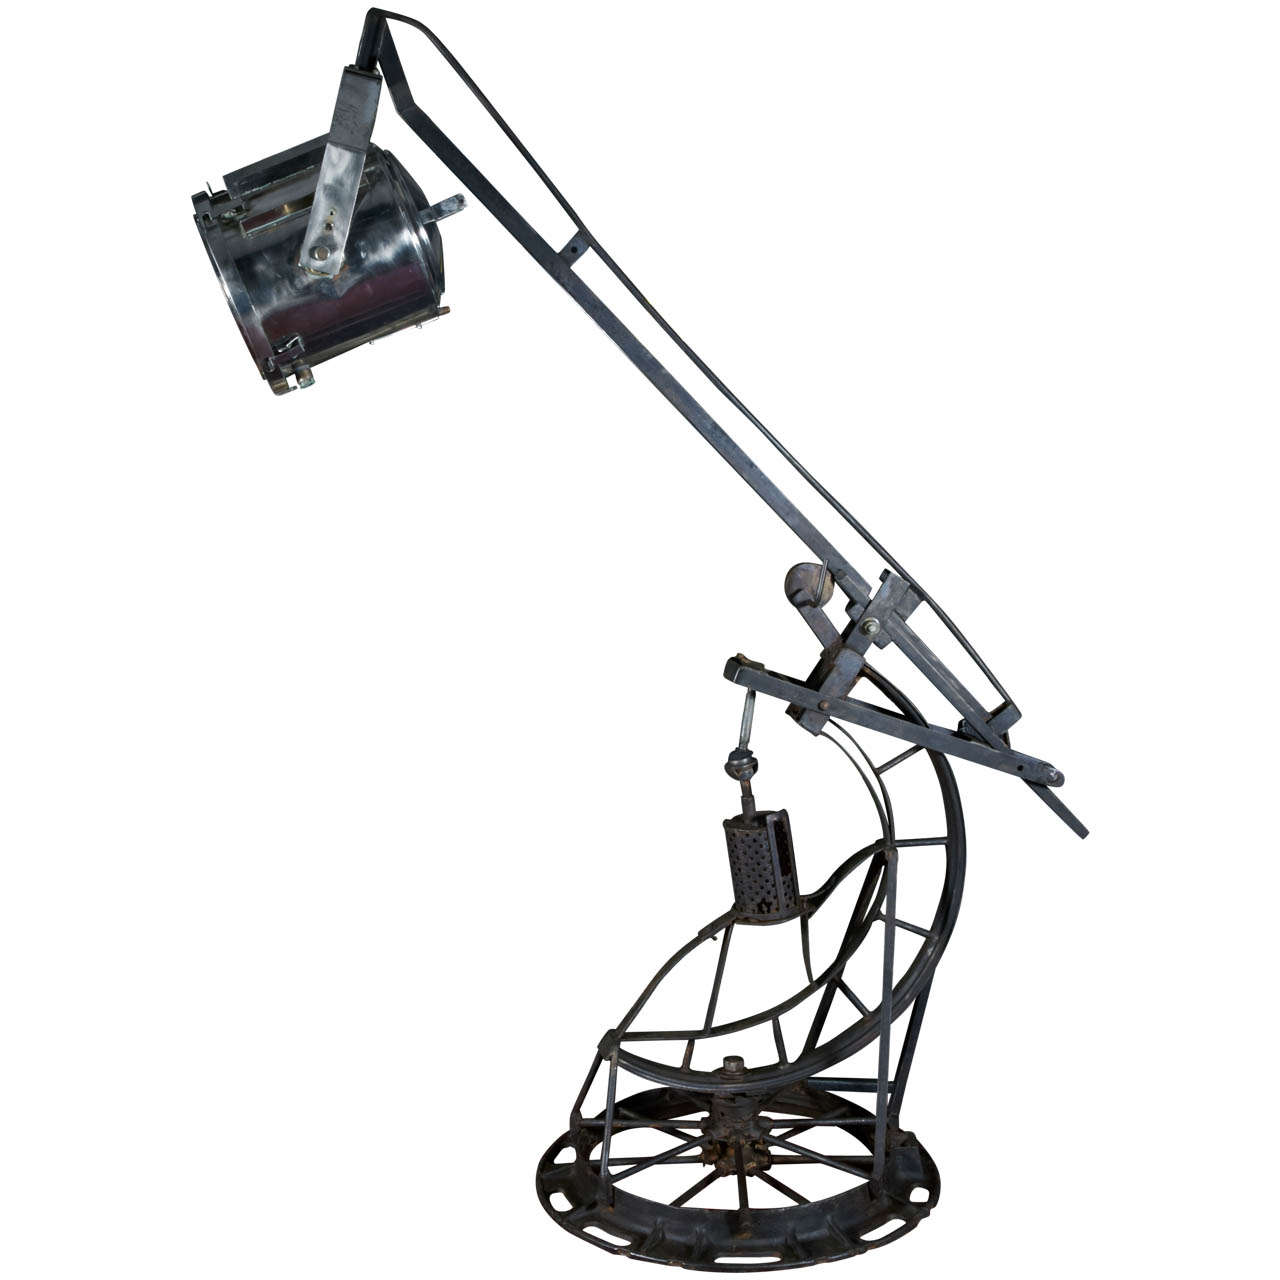 20th Century Large Industrial Floor Lamp With Hydraulic